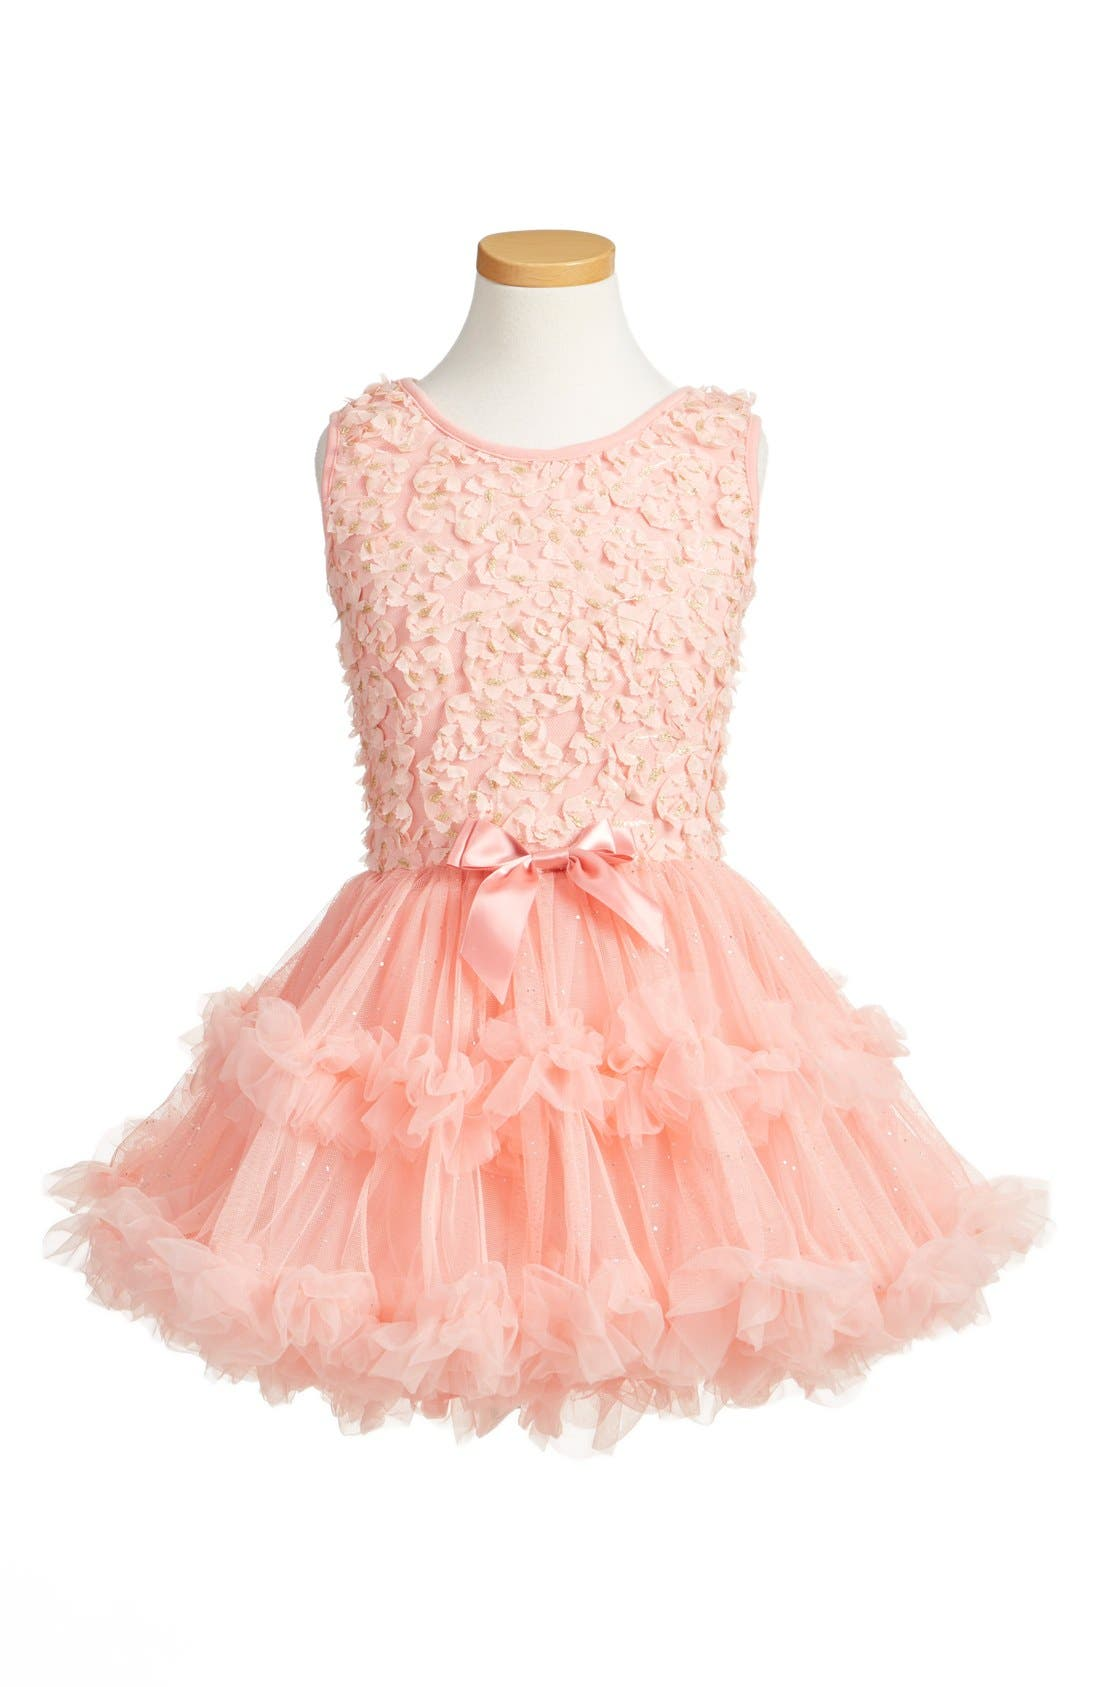 Alternate Image 1 Selected - Popatu Floral Appliqué Tutu Dress (Toddler Girls & Little Girls)